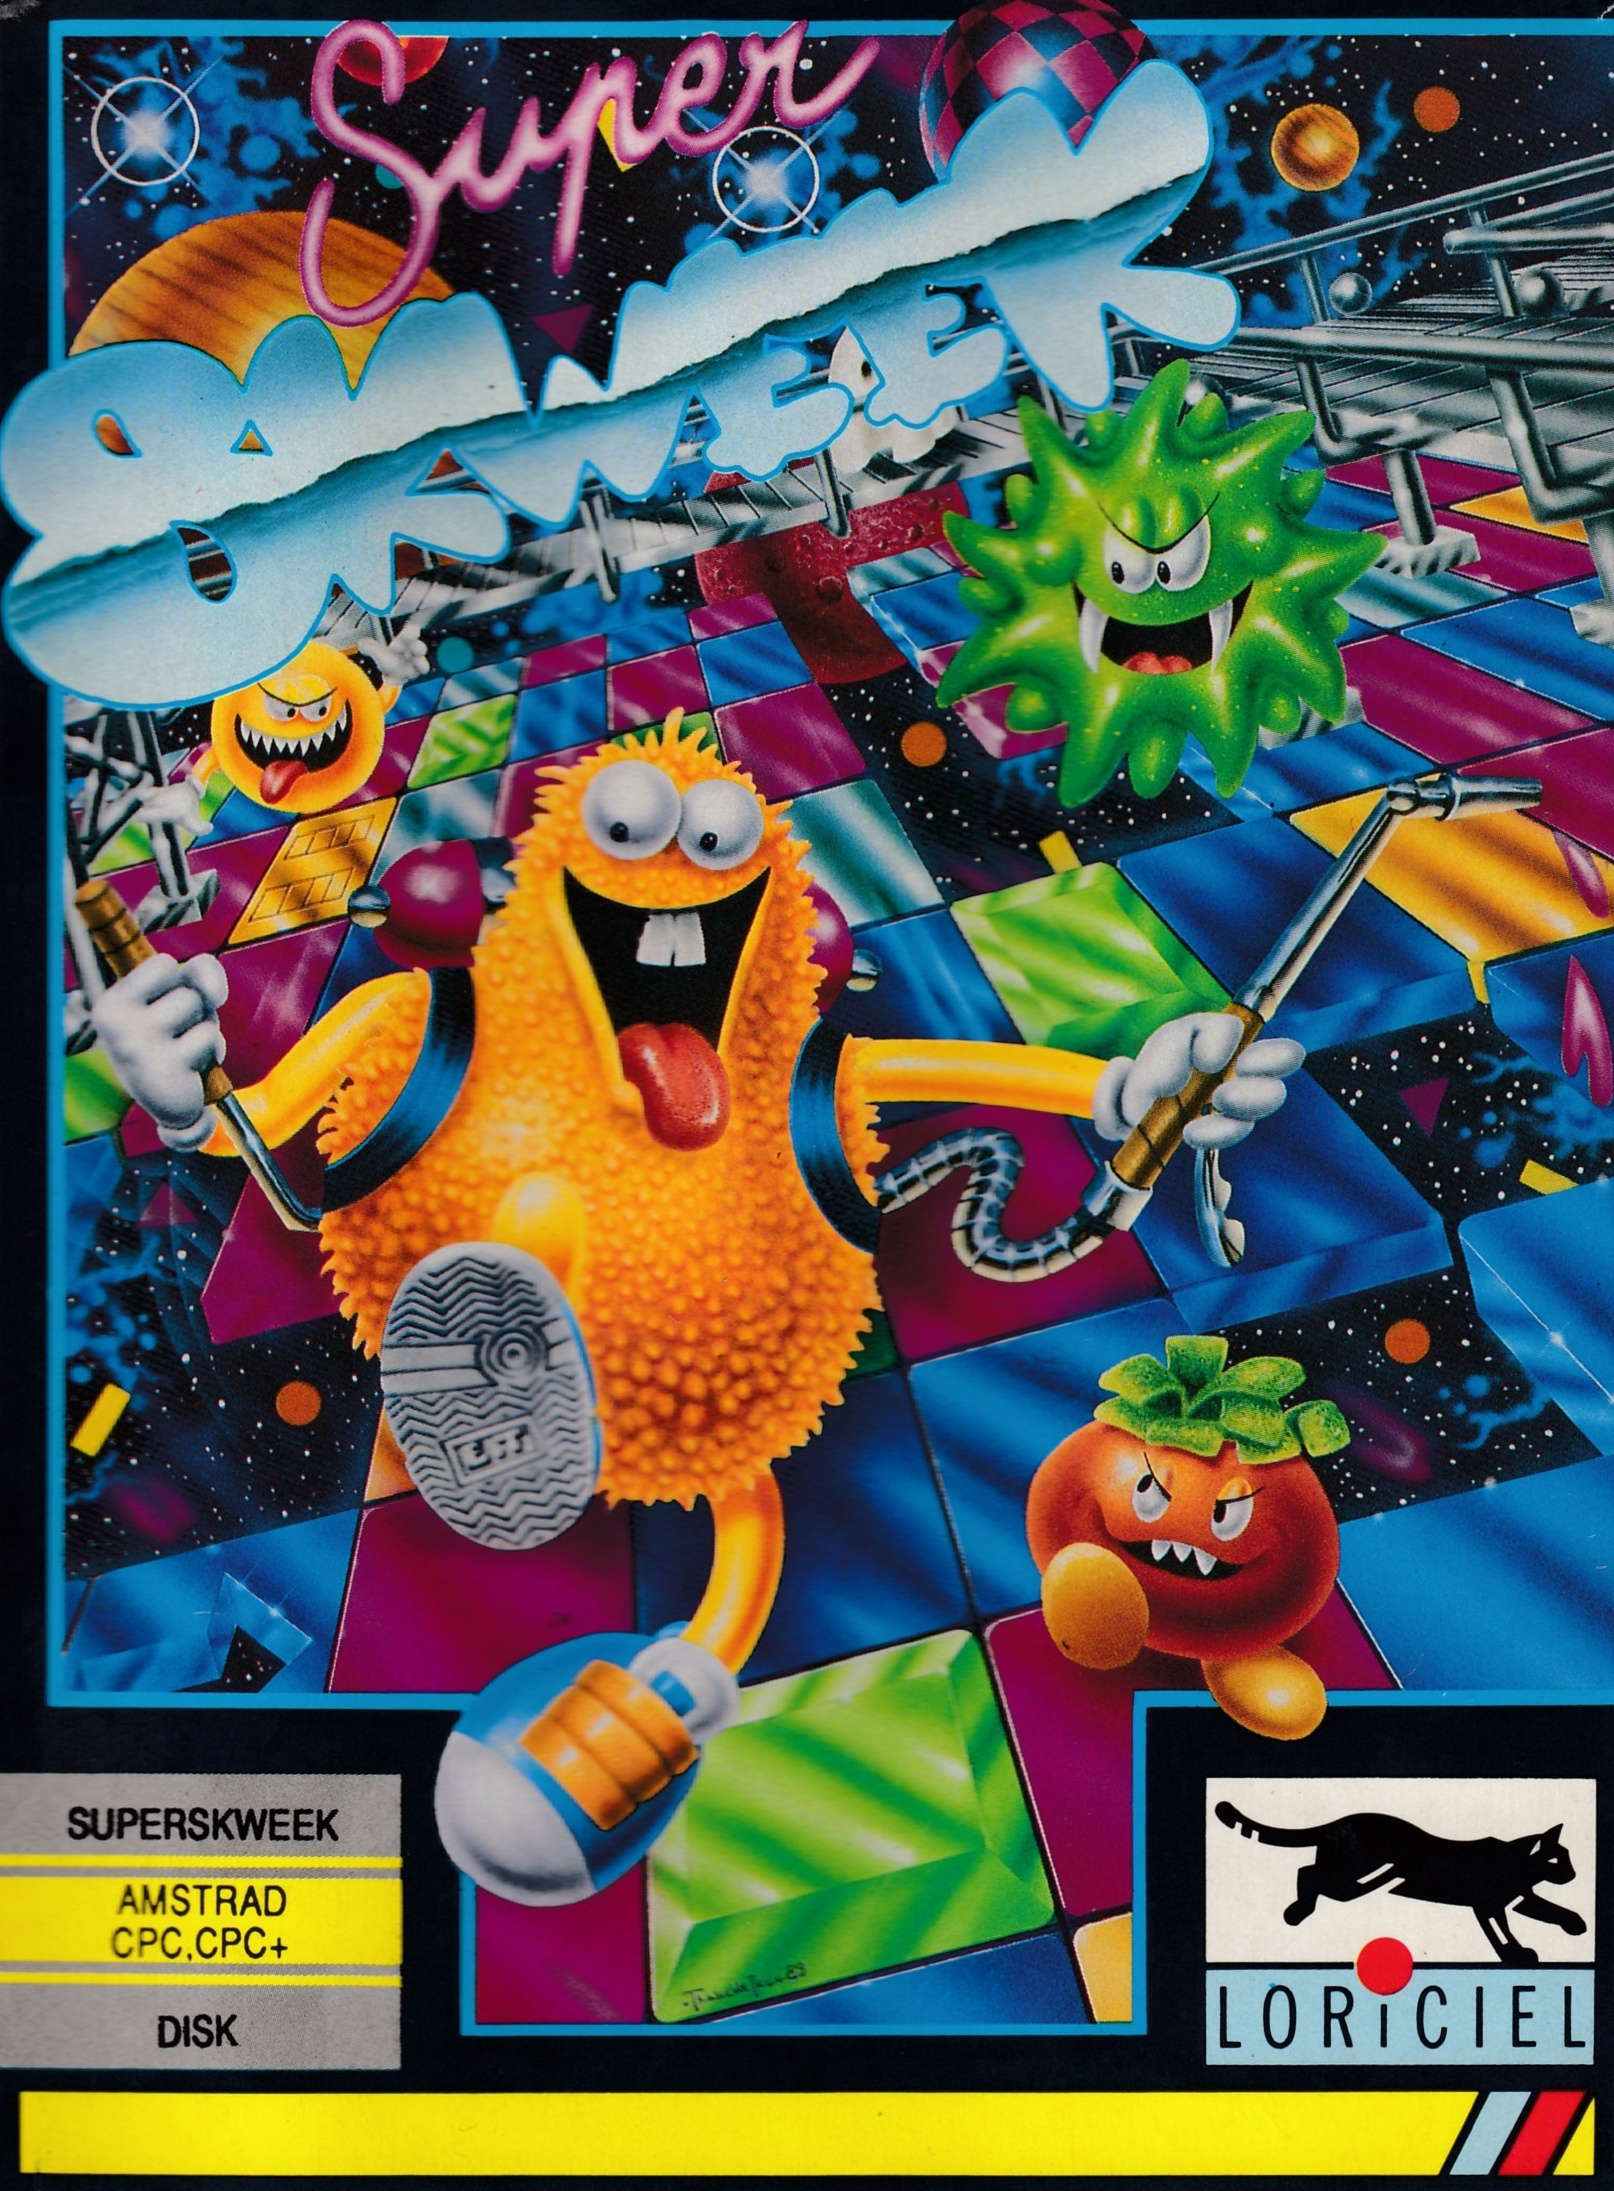 cover of the Amstrad CPC game Super Skweek  by GameBase CPC